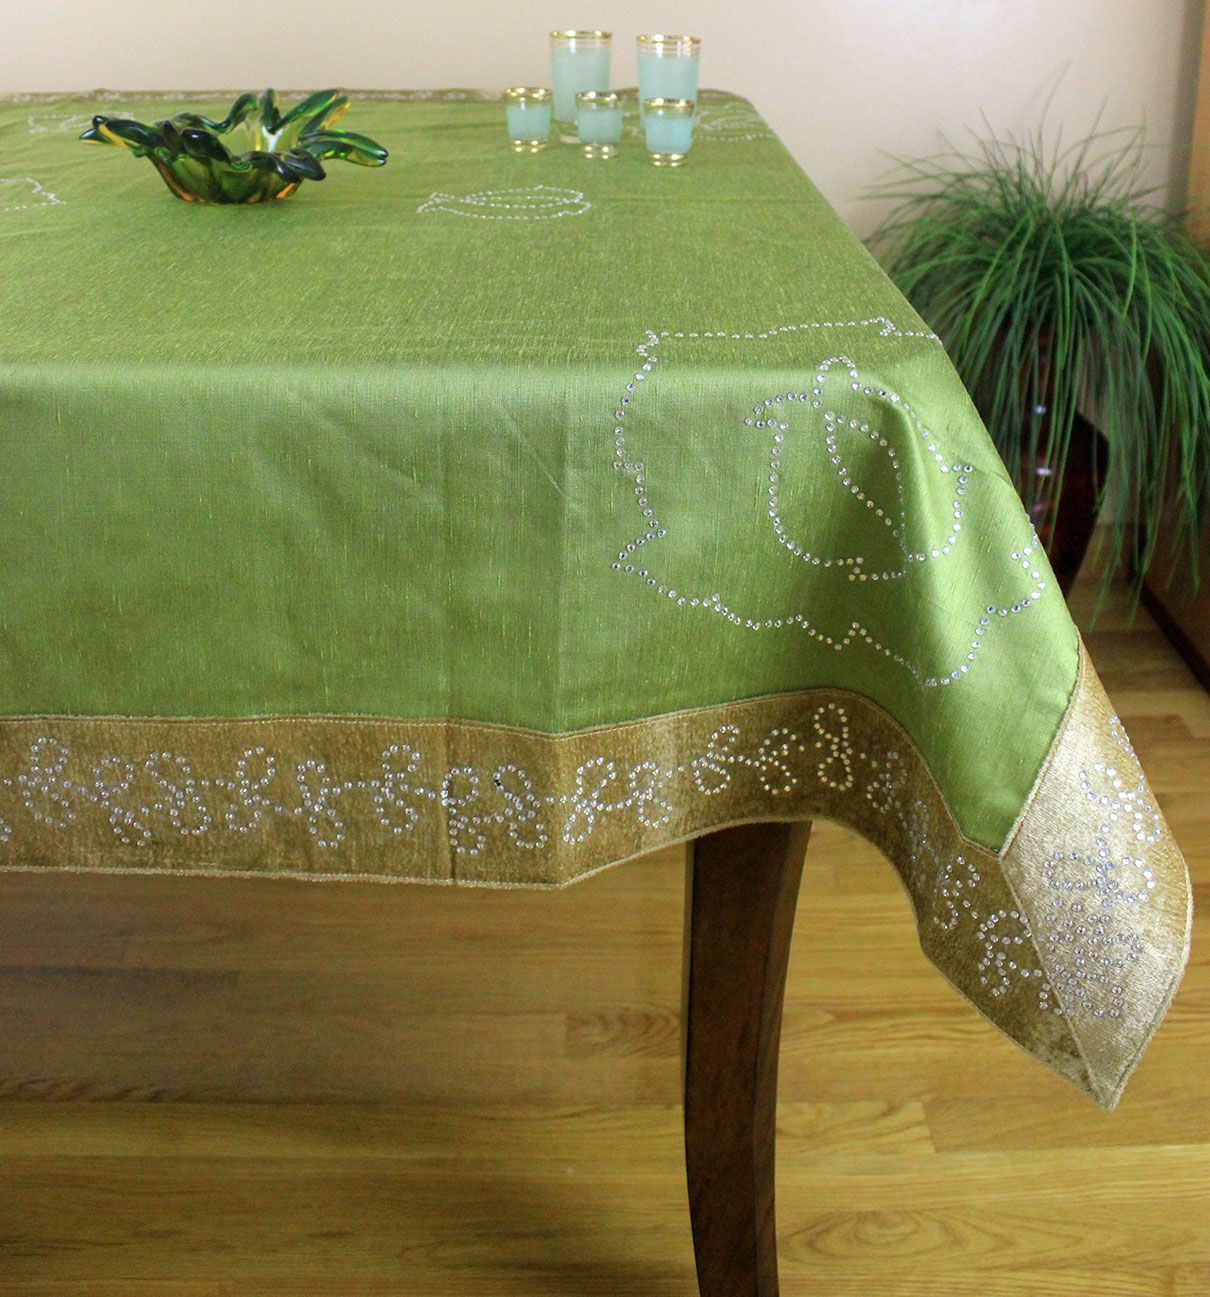 Perfect Elegant Velvet Sparkle Rectangular Ideal For Holidays And Events Table Top  Decorations. Made In India. Available In Other Bold Color Options.